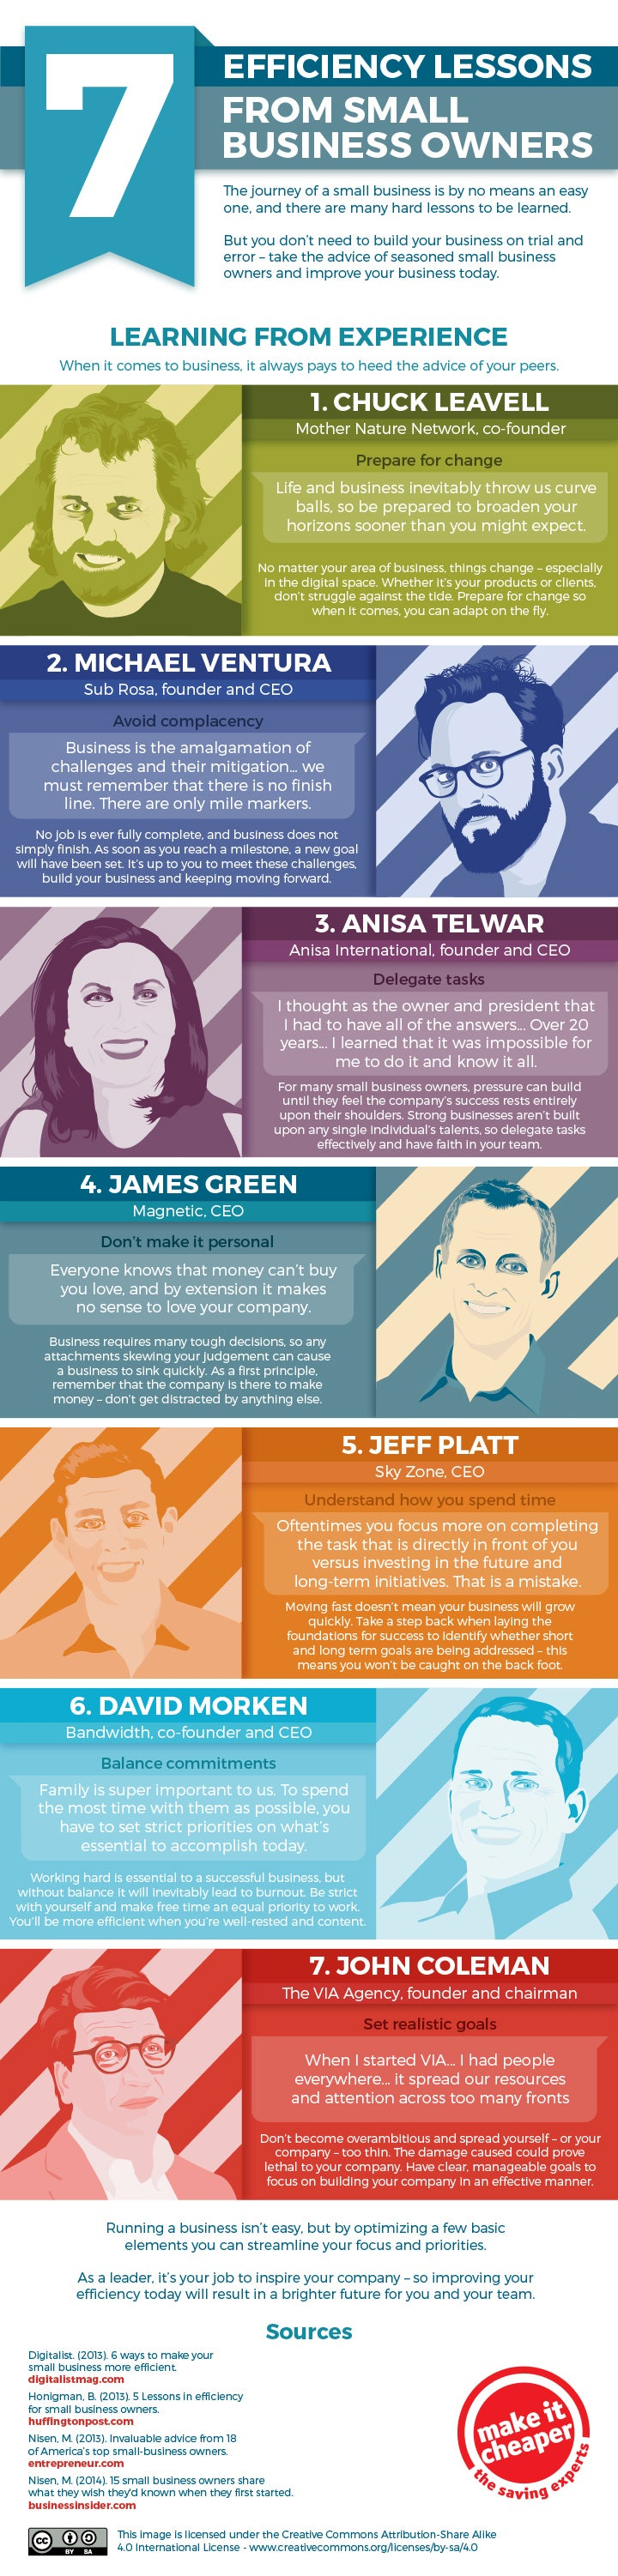 7-efficiency-lessons-from-small-business-owners.jpg(Infographic)